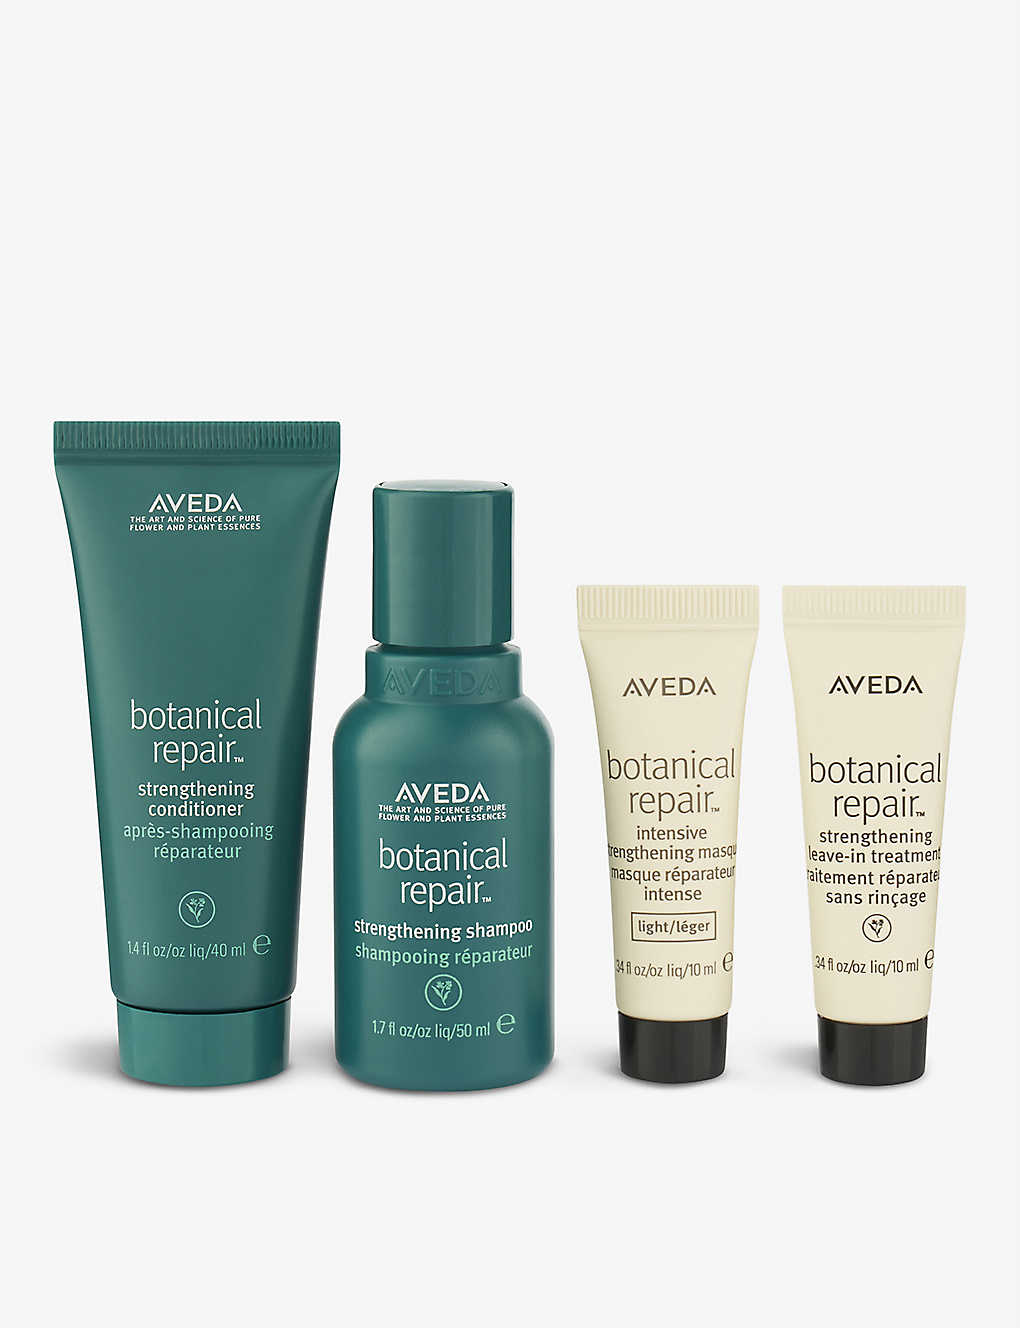 AVEDA: botanical repair™ gift set